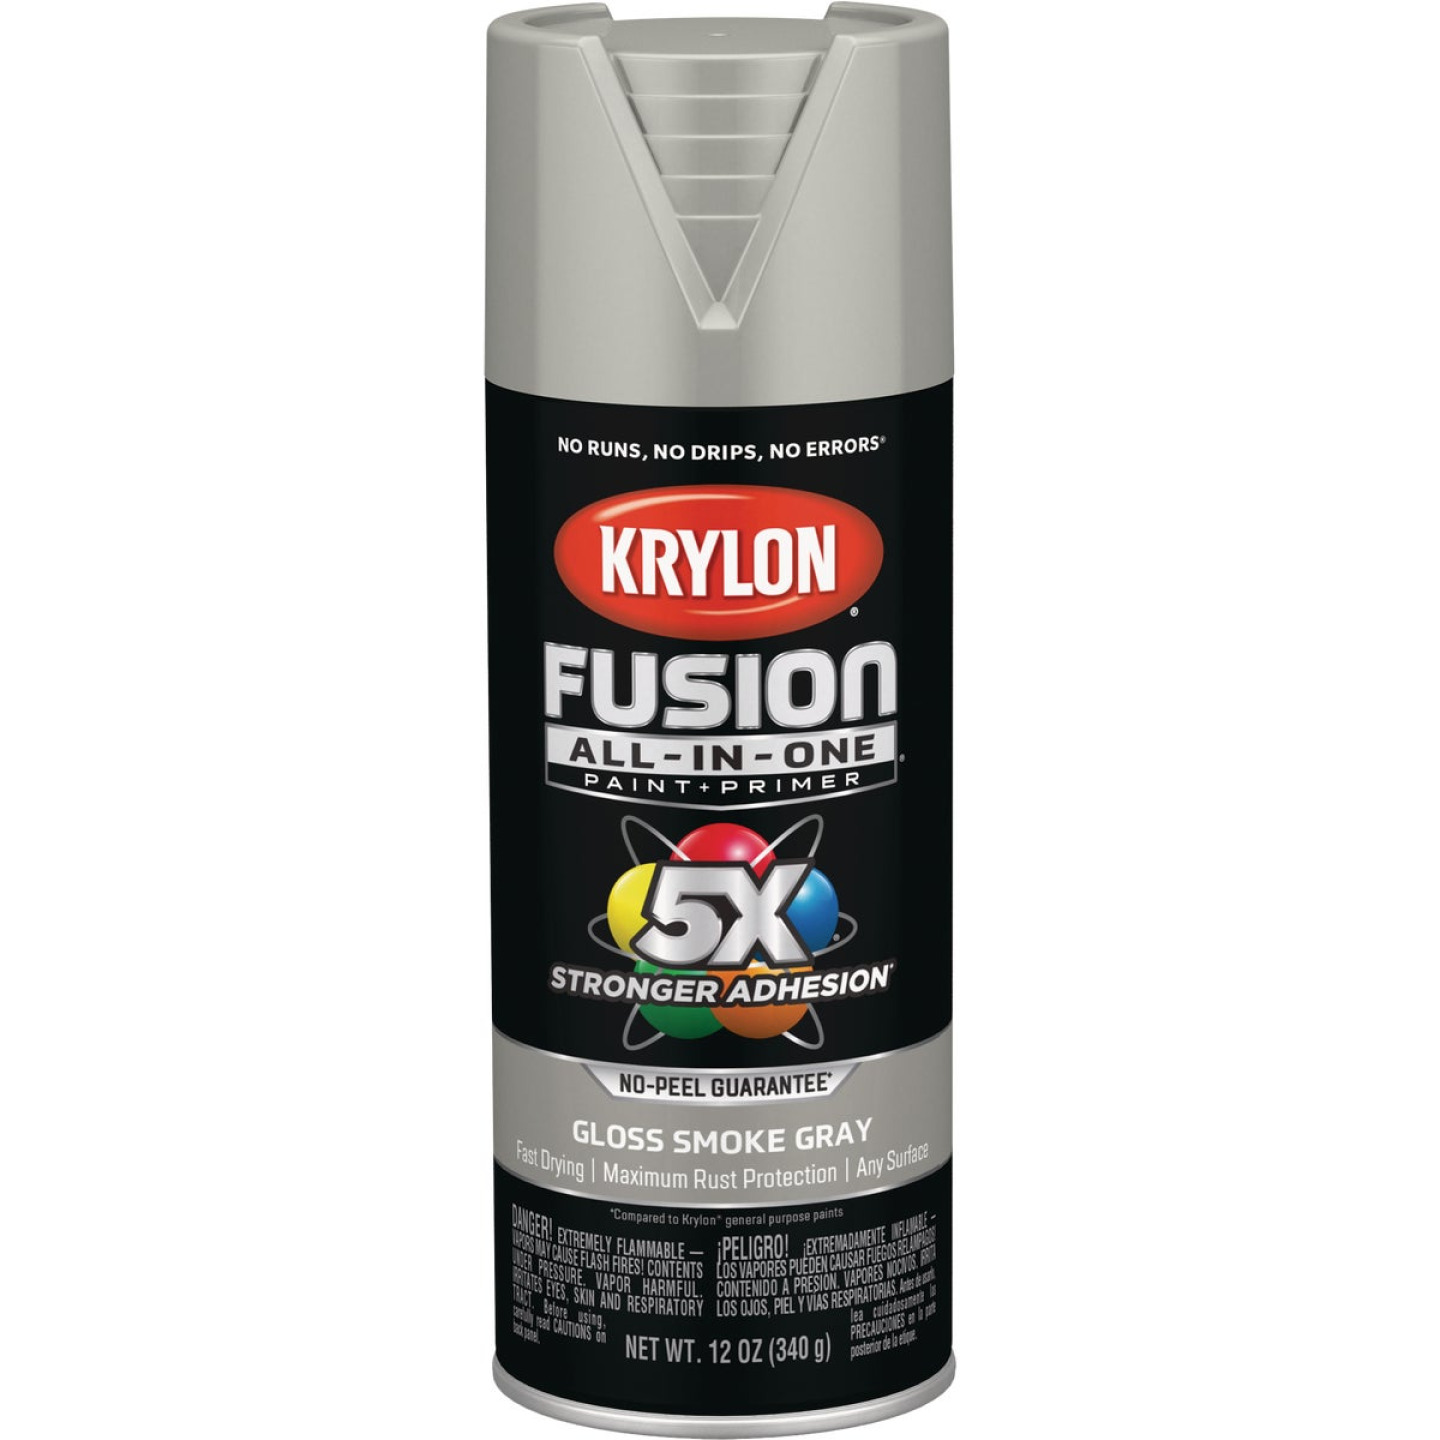 Krylon Fusion All-In-One Gloss Spray Paint & Primer, Smoke Gray Image 1